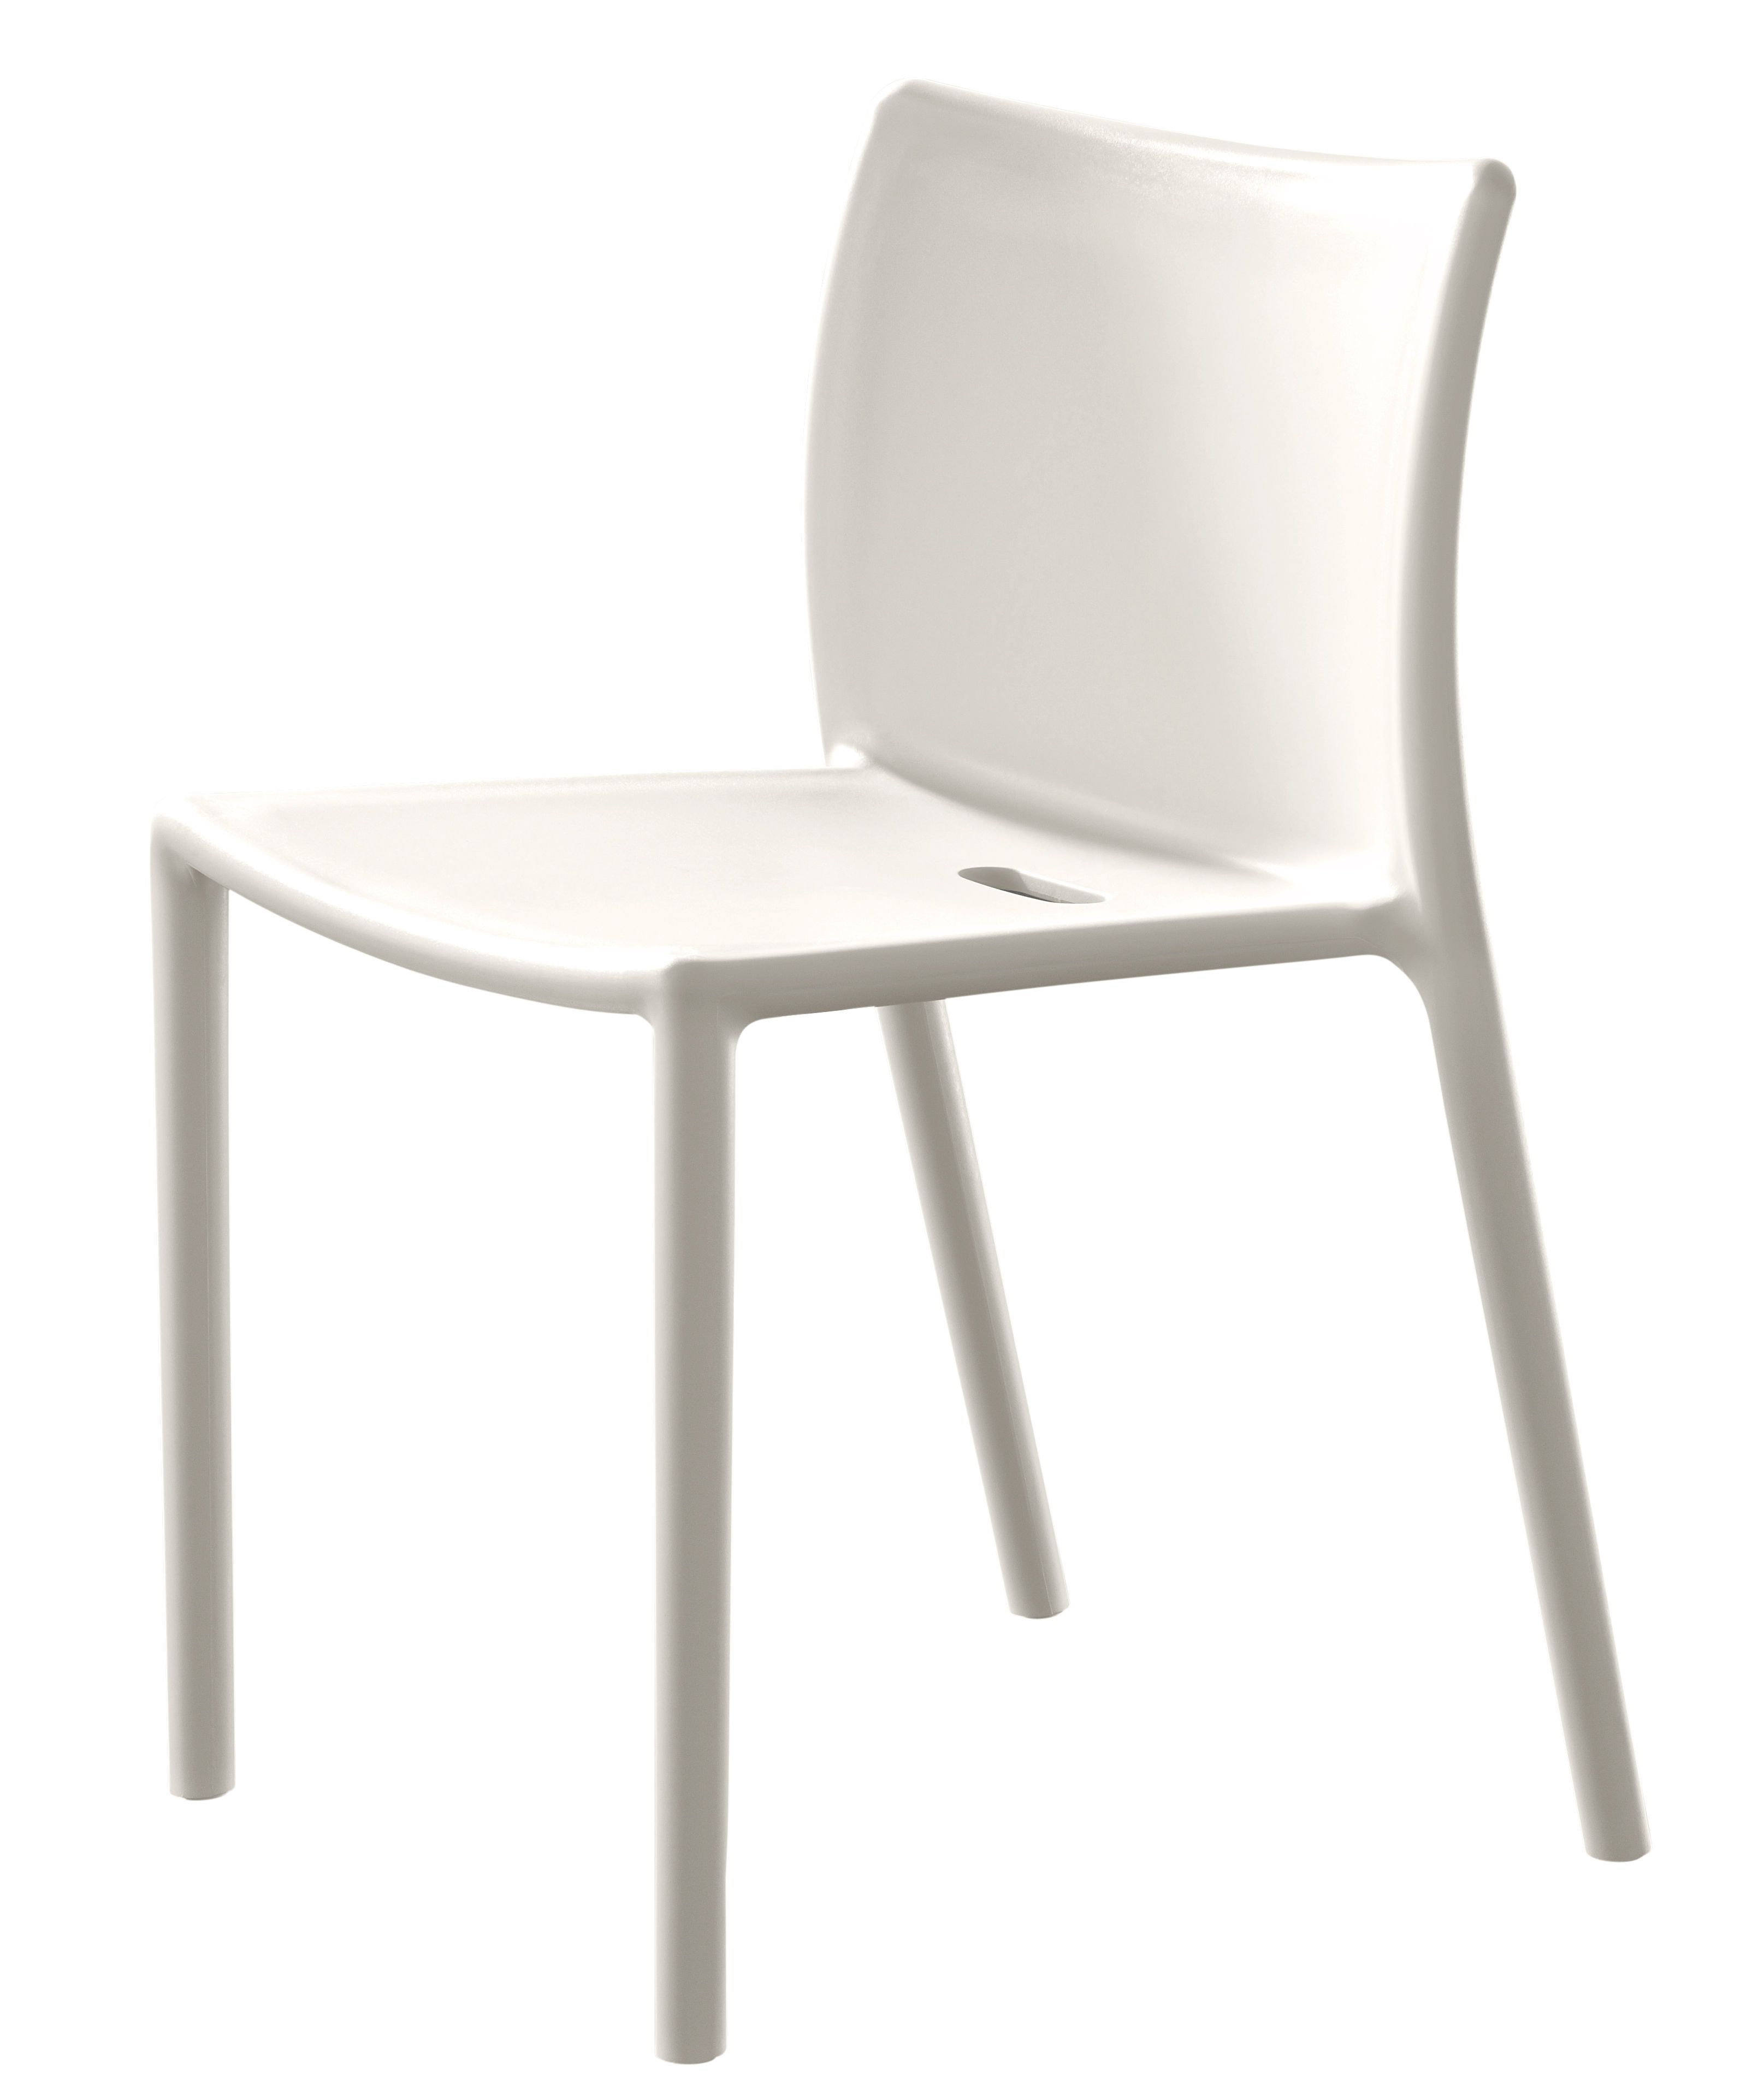 White Stackable Chairs Air Chair Stacking Chair Polypropylene By Magis